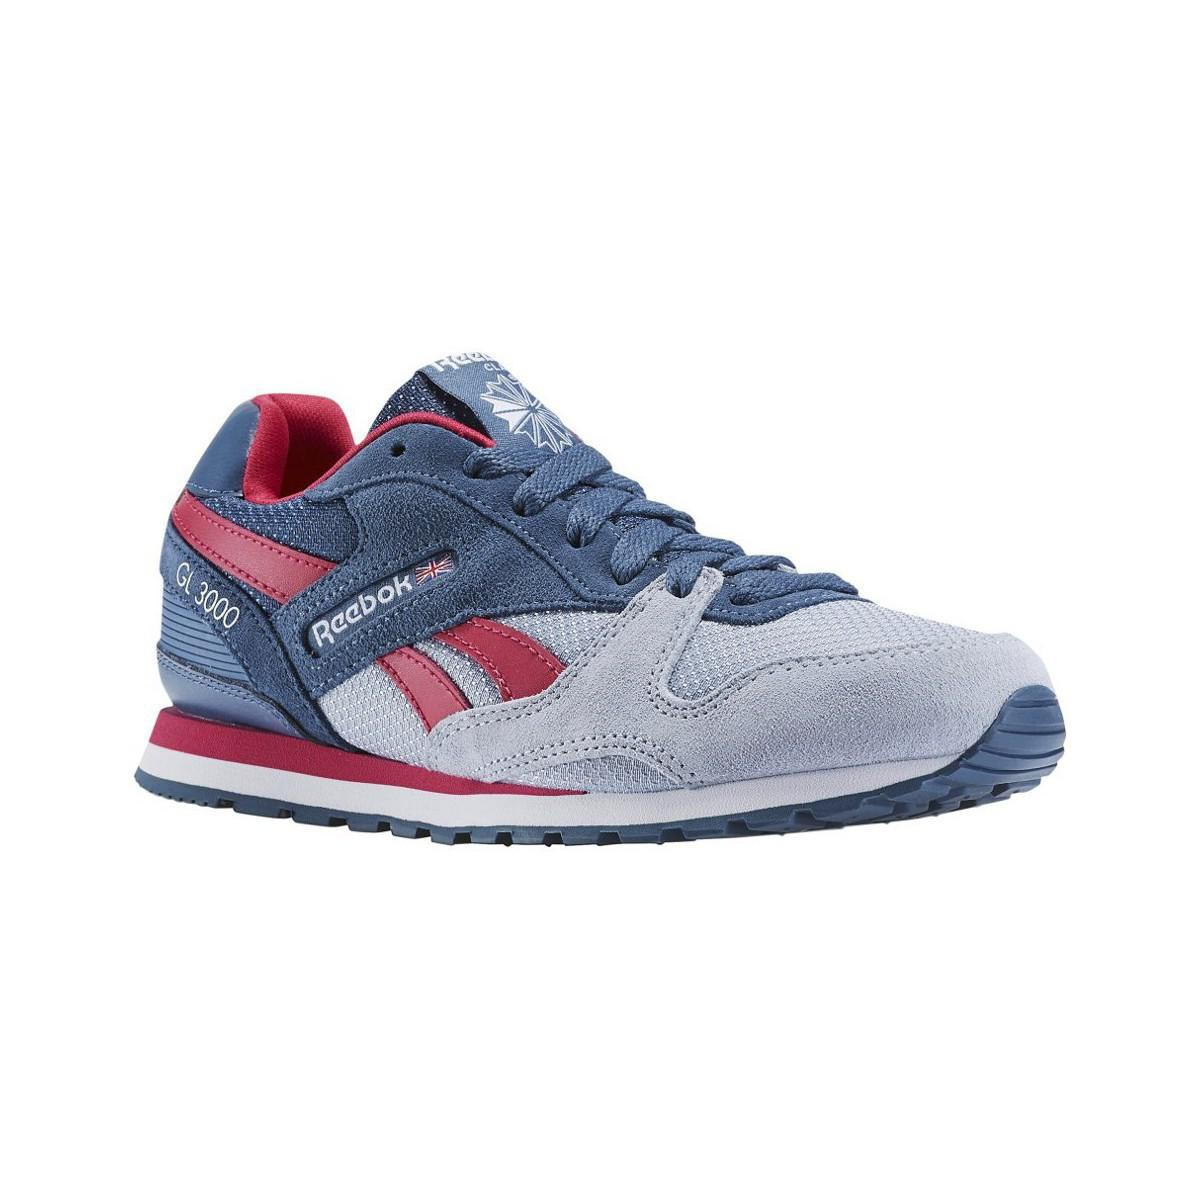 5cdf84555fd2 Reebok Gl 3000 Sp Women s Shoes (trainers) In Multicolour in Blue - Lyst